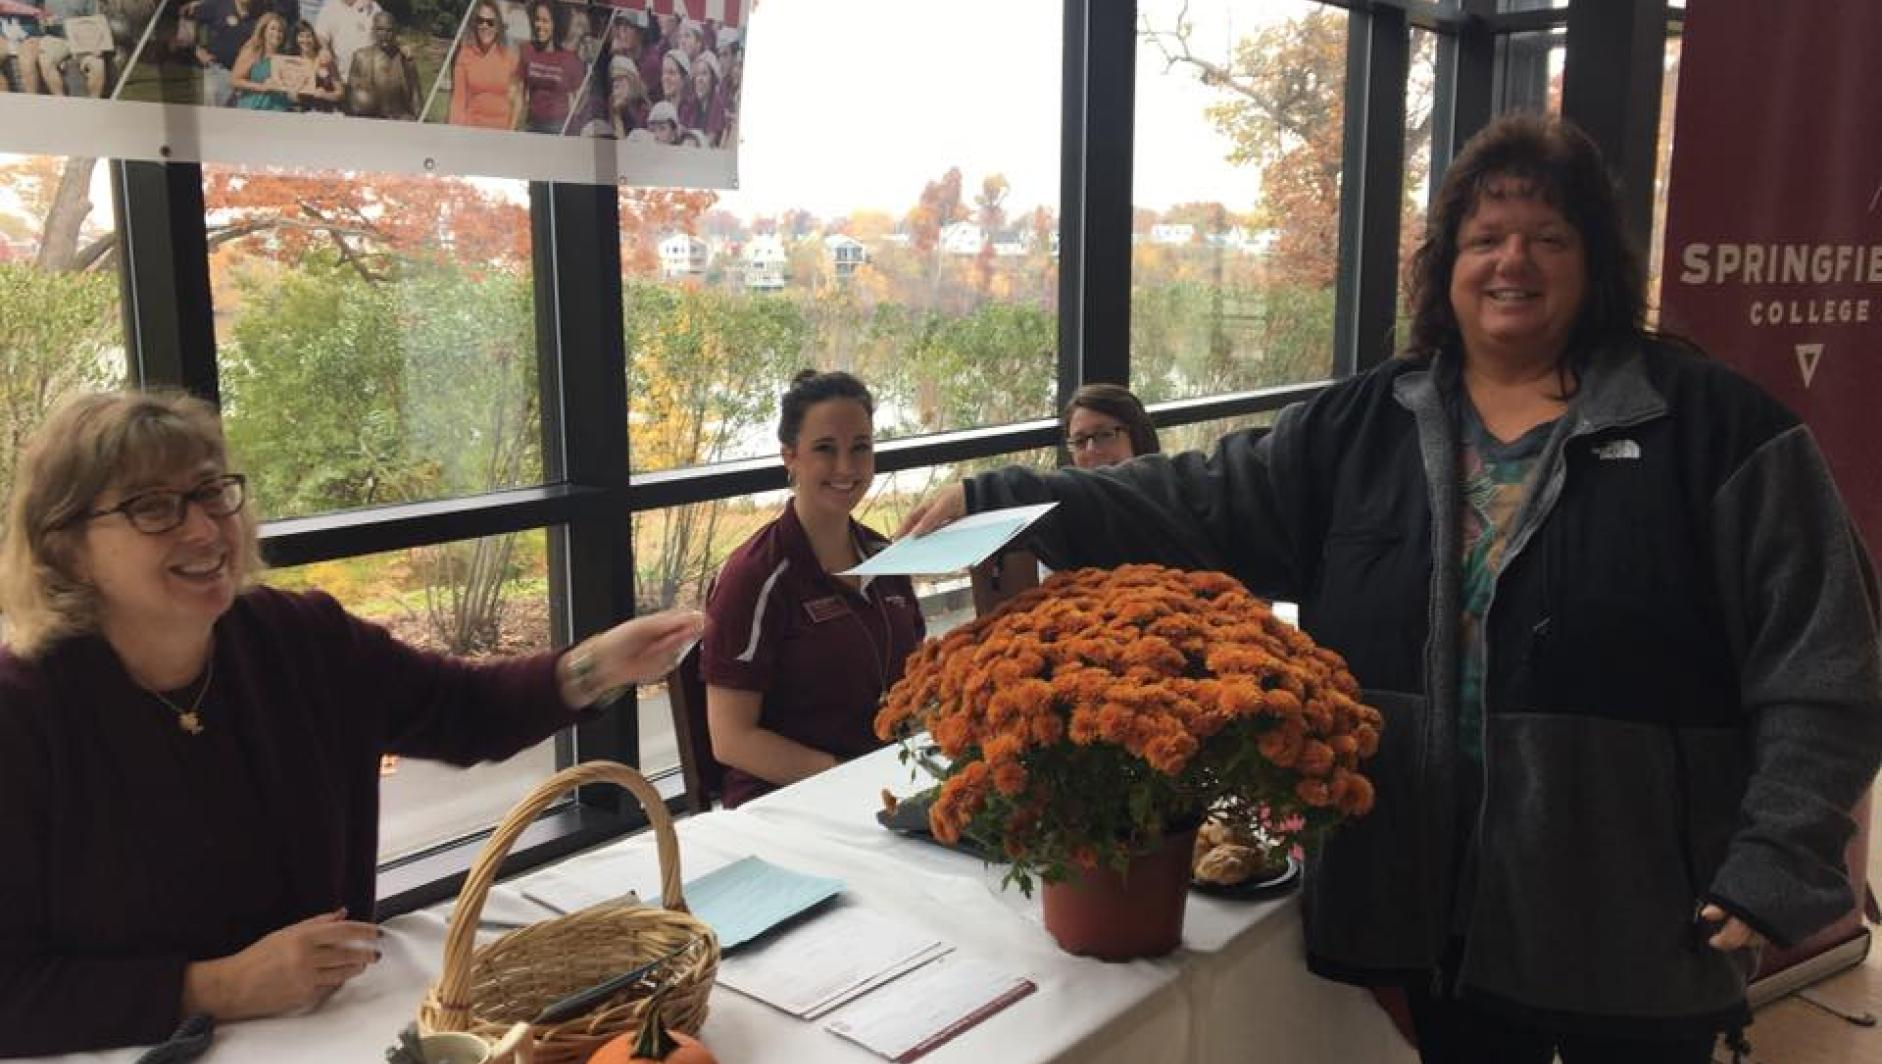 A Springfield College staff member makes a suggestion at the referral table during the day of recruitment.